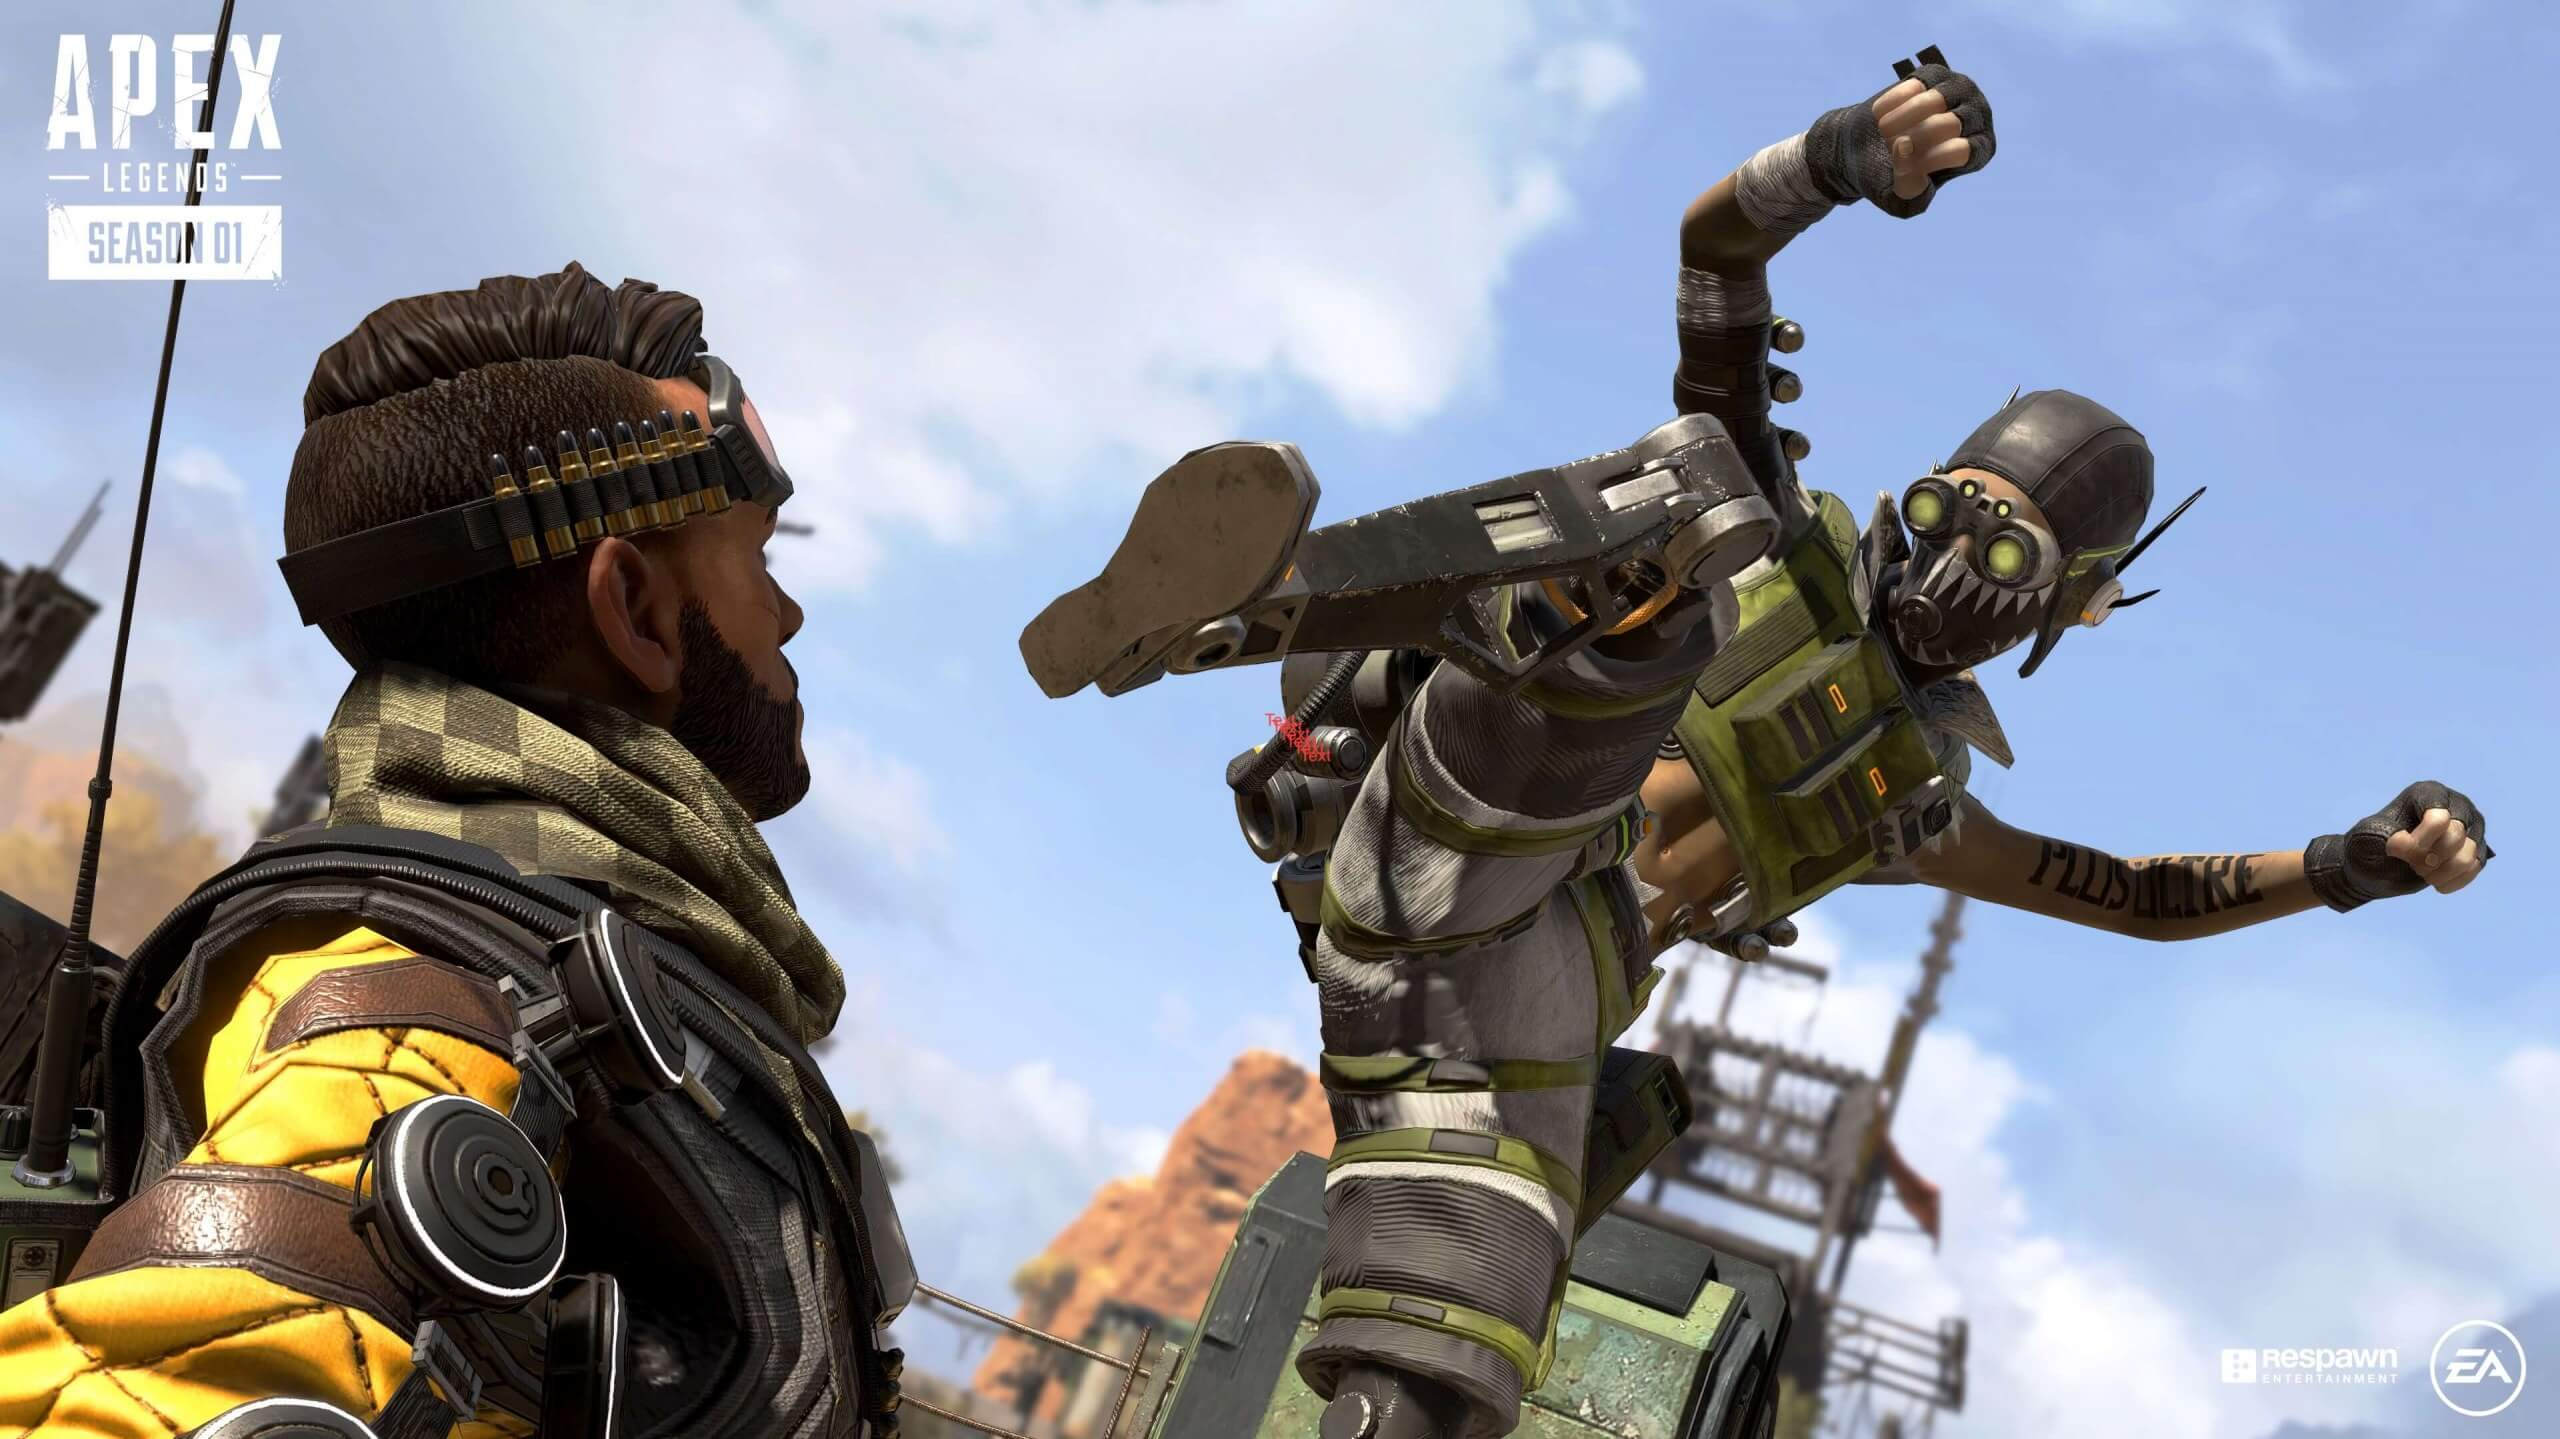 Respawn has banned 770,000 Apex Legends cheaters since launch